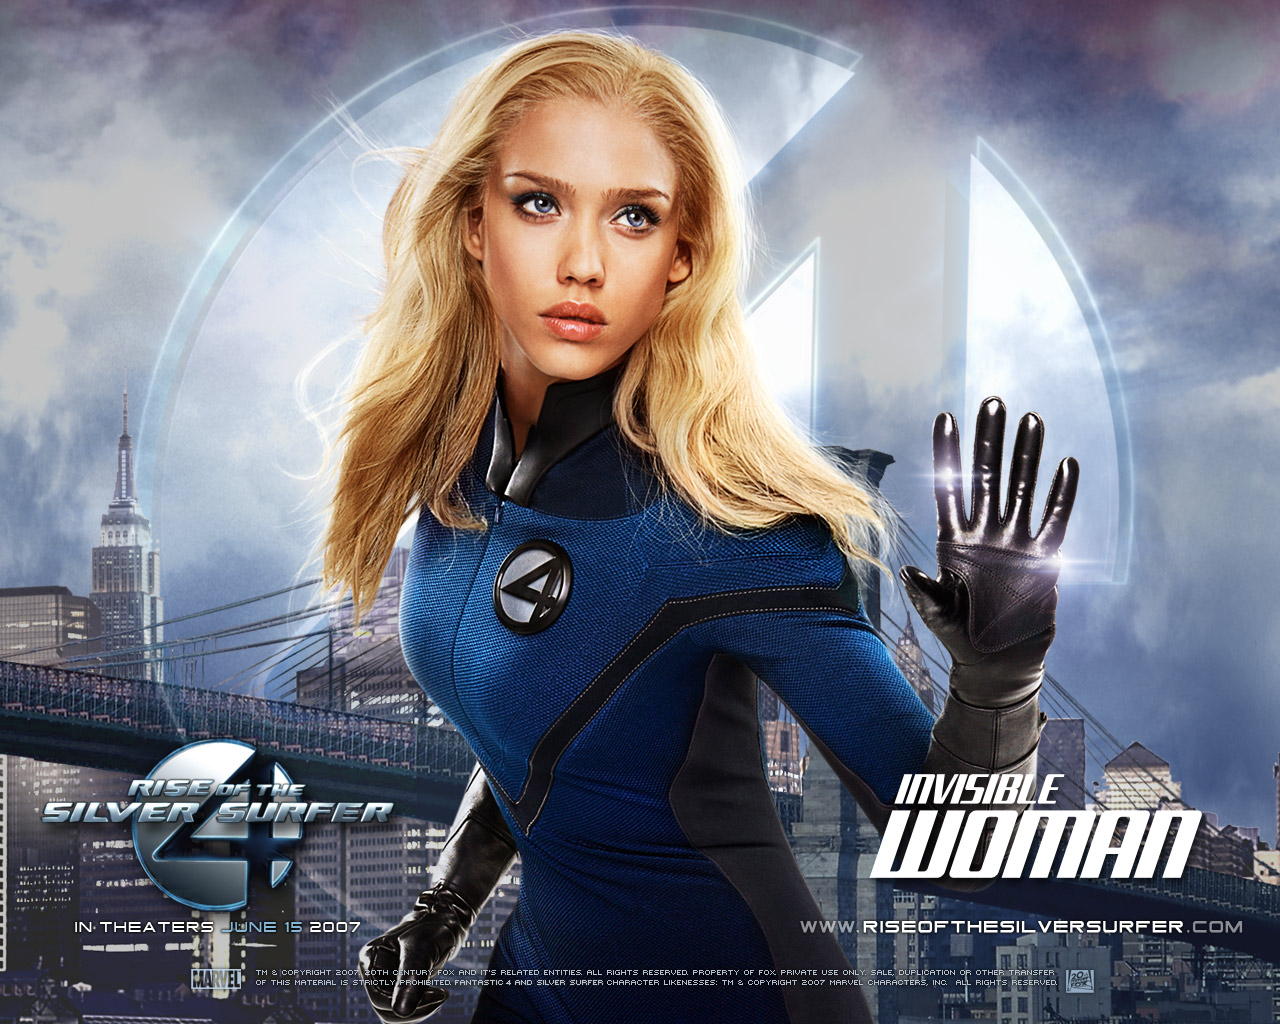 Invisible Woman - cynthia-selahblue (cynti19) Wallpaper ...